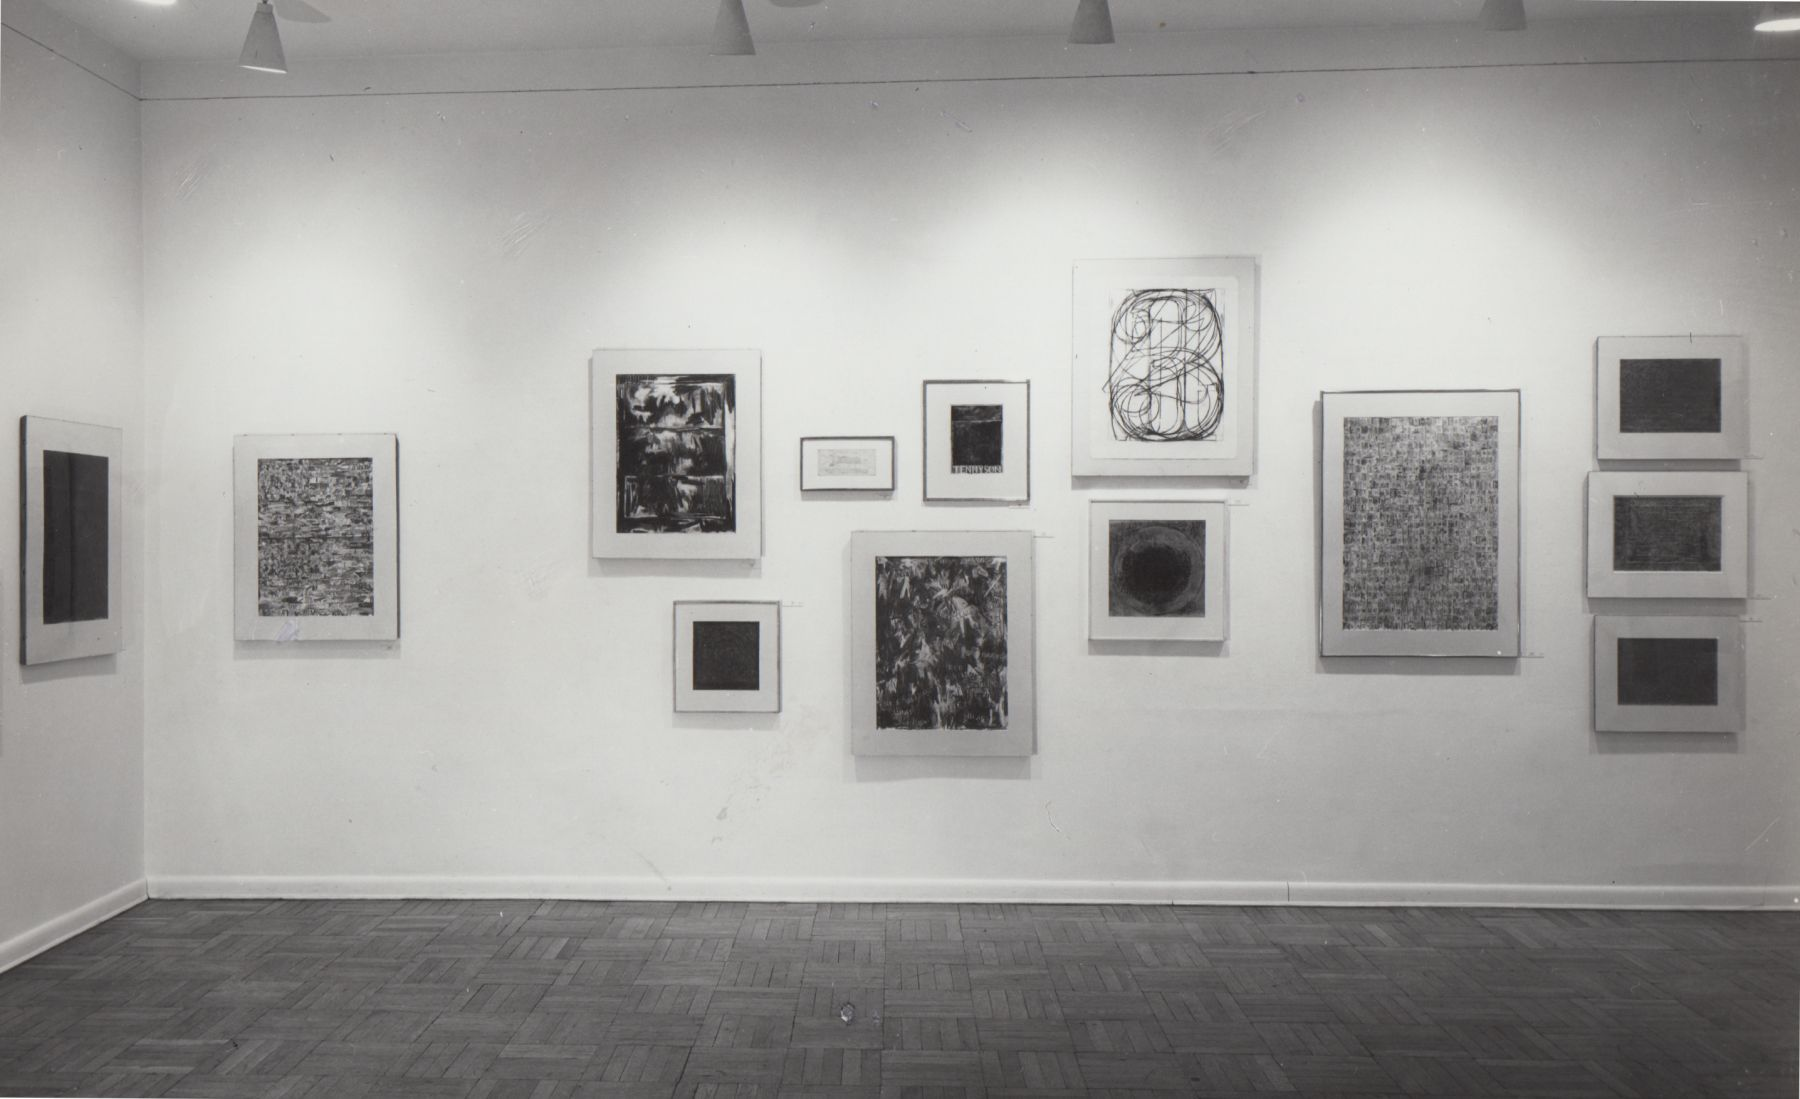 Installation view, Jasper Johns: Drawings, Sculptures & Lithographs, 4 EAST 77